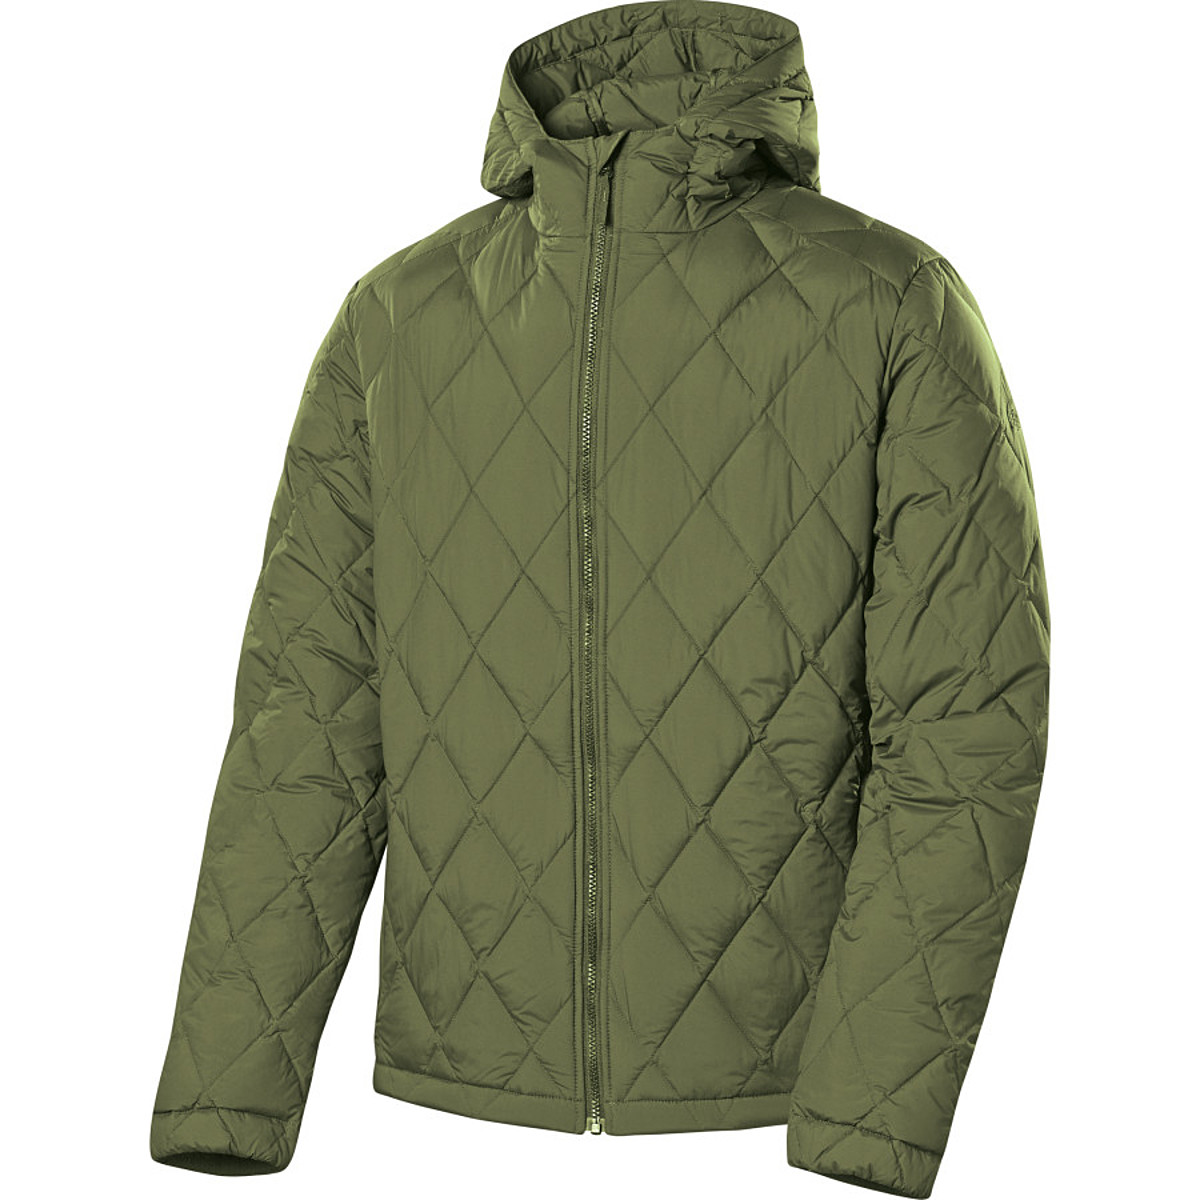 Sierra Designs Stretch DriDown Hoody